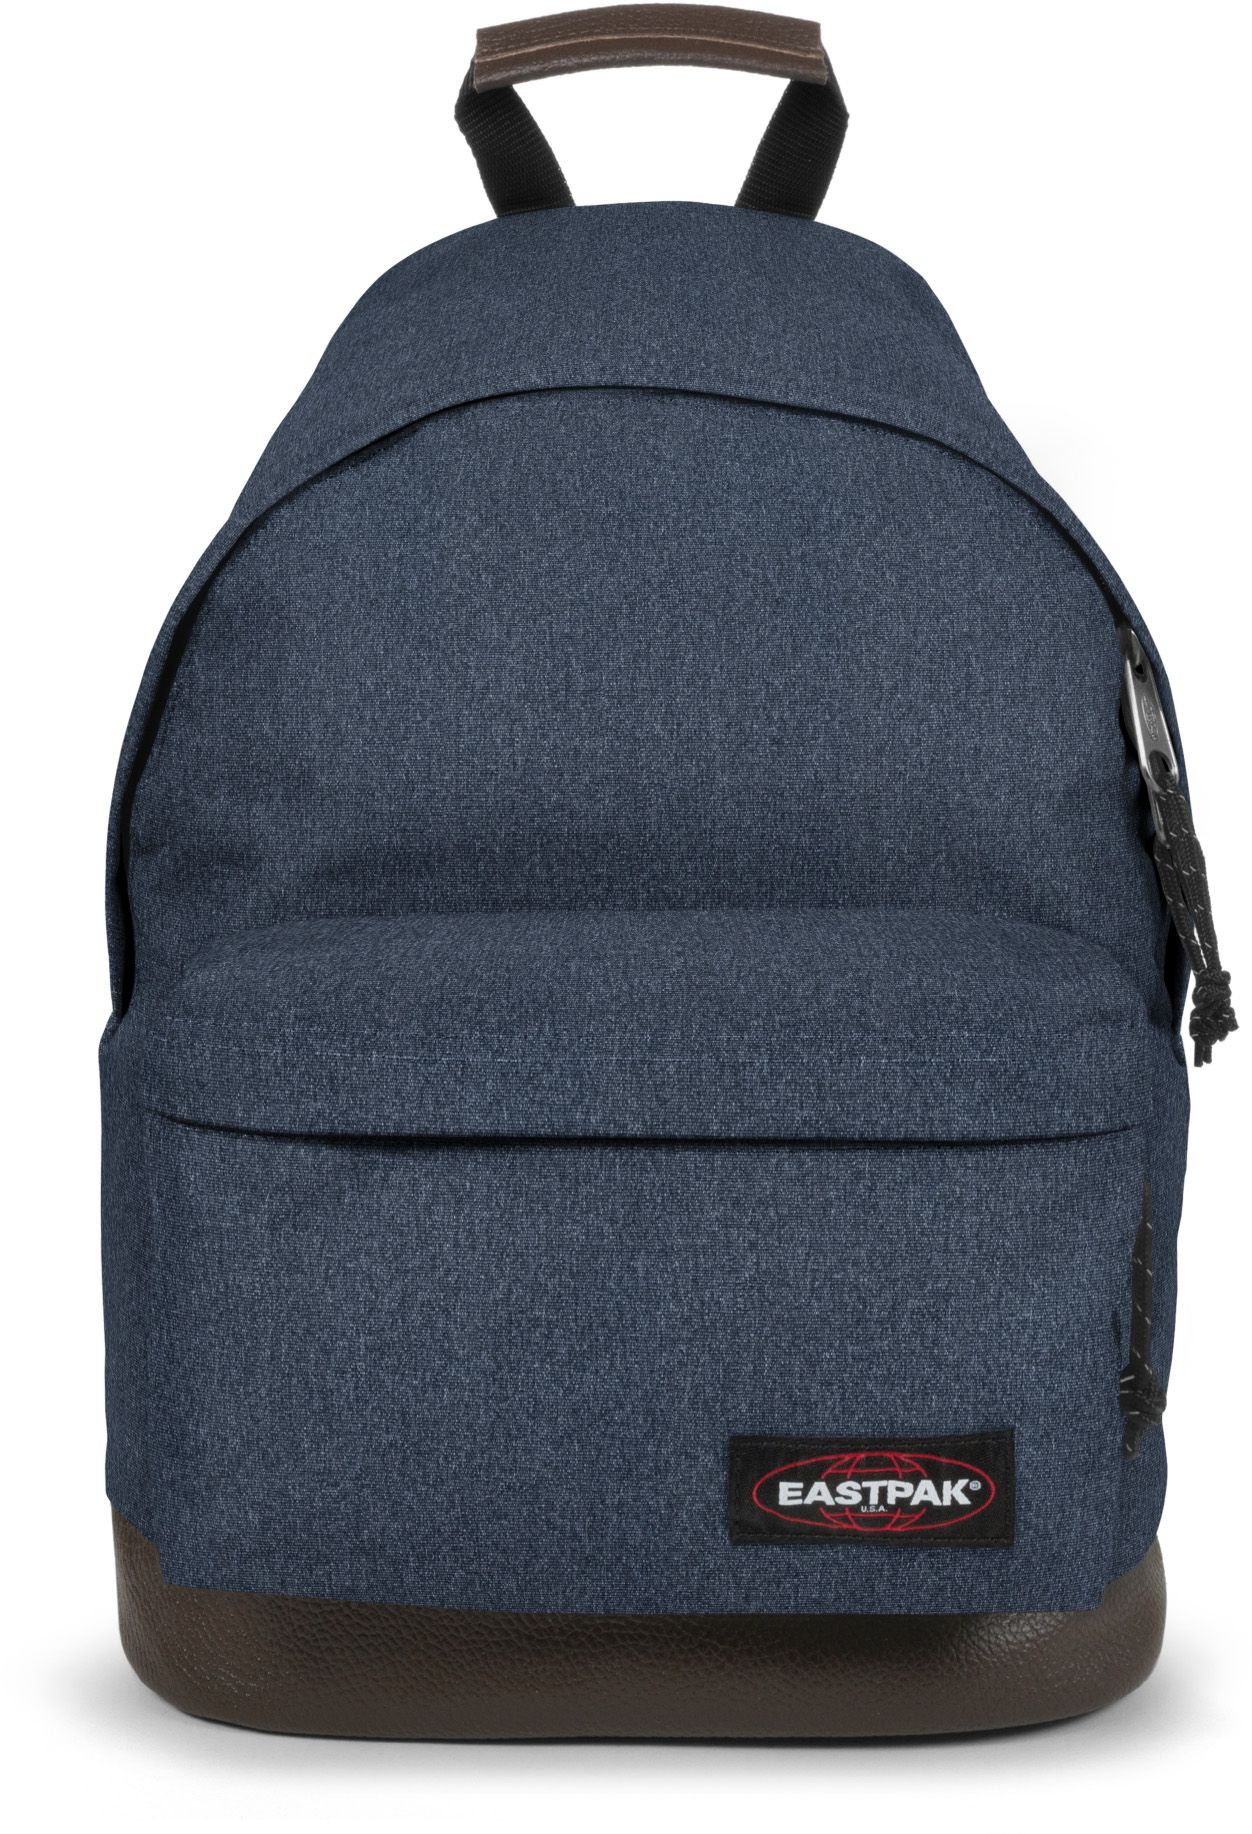 EASTPAK Eastpak Rucksack mit Laptopfach, »WYOMING double denim«